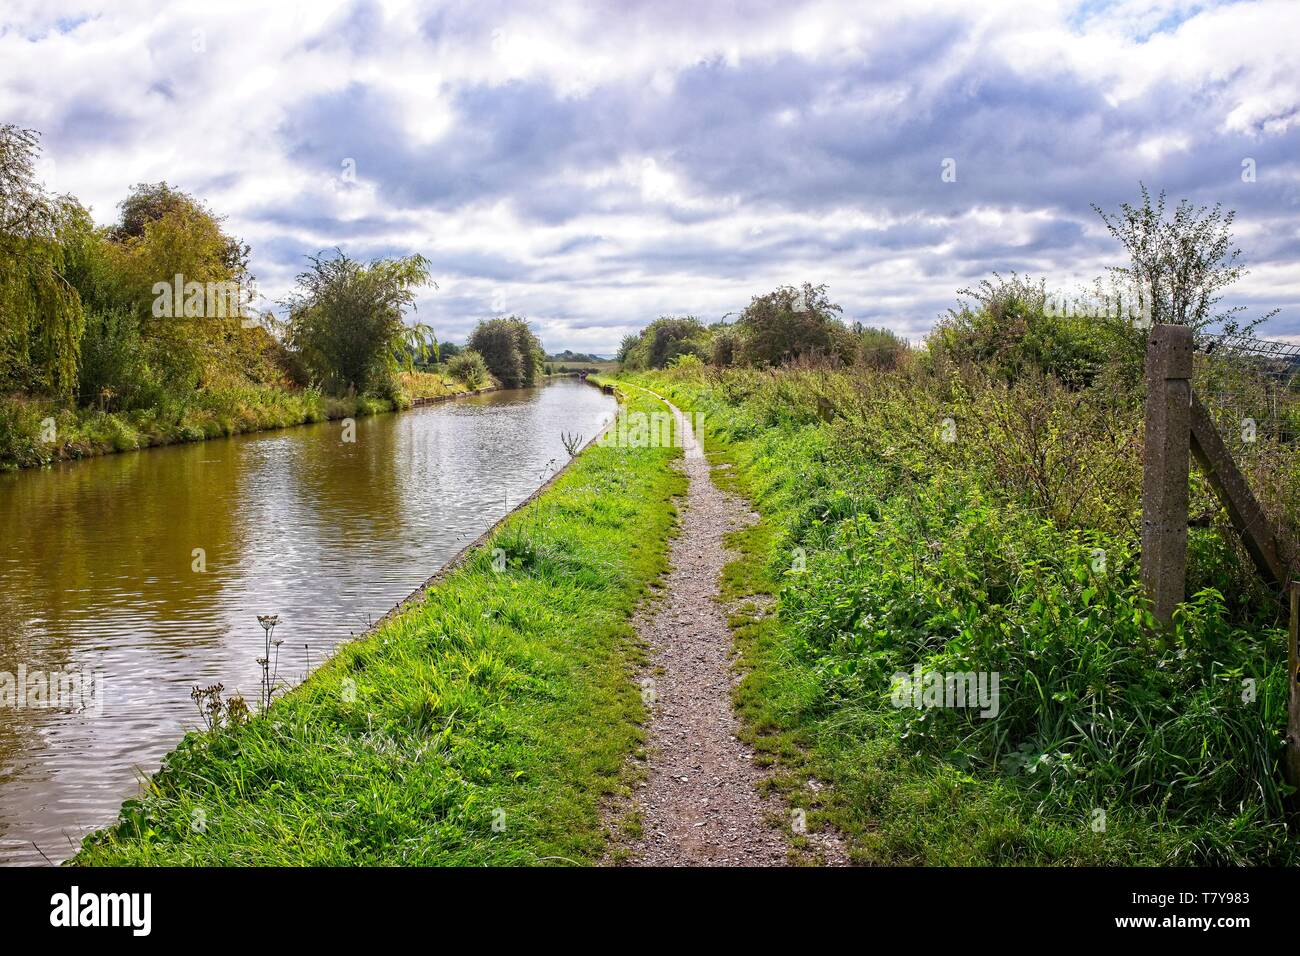 Trent and Mersey canal with towpath in Elworth near Sandbach Cheshire UK - Stock Image